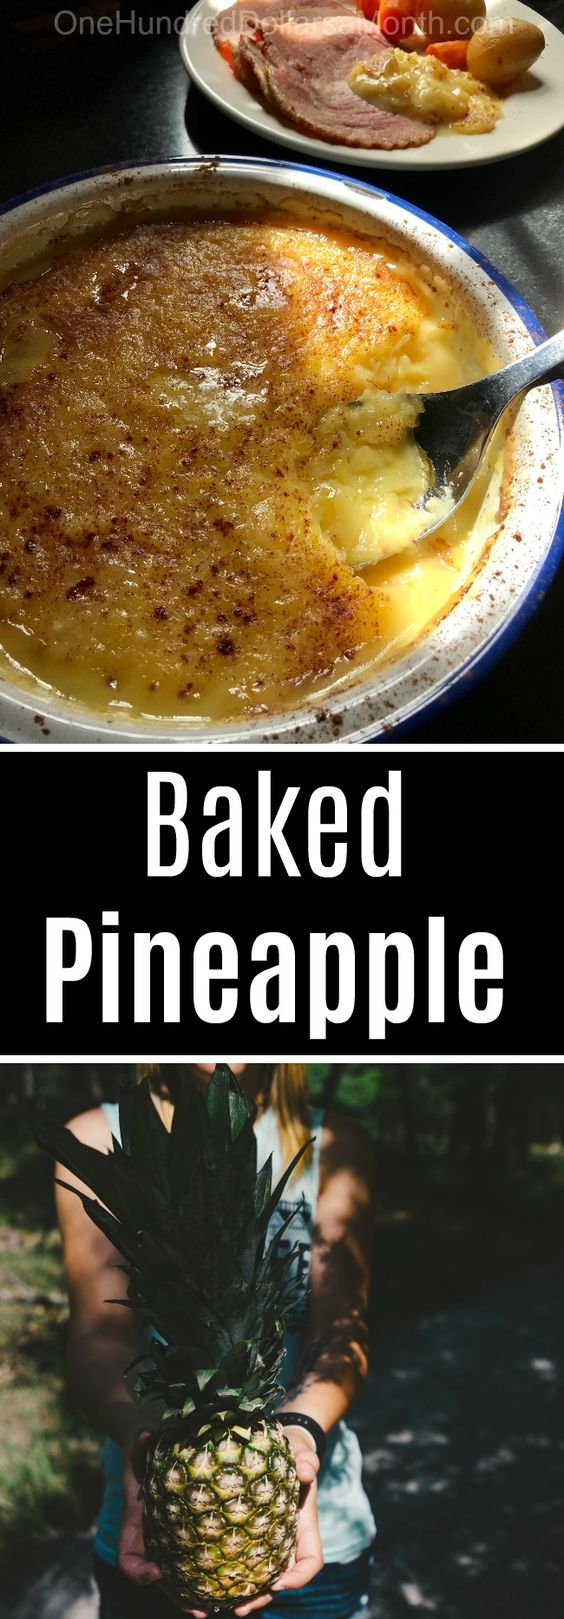 Baked Pineapple Custard Recipe - One Hundred Dollars a Month